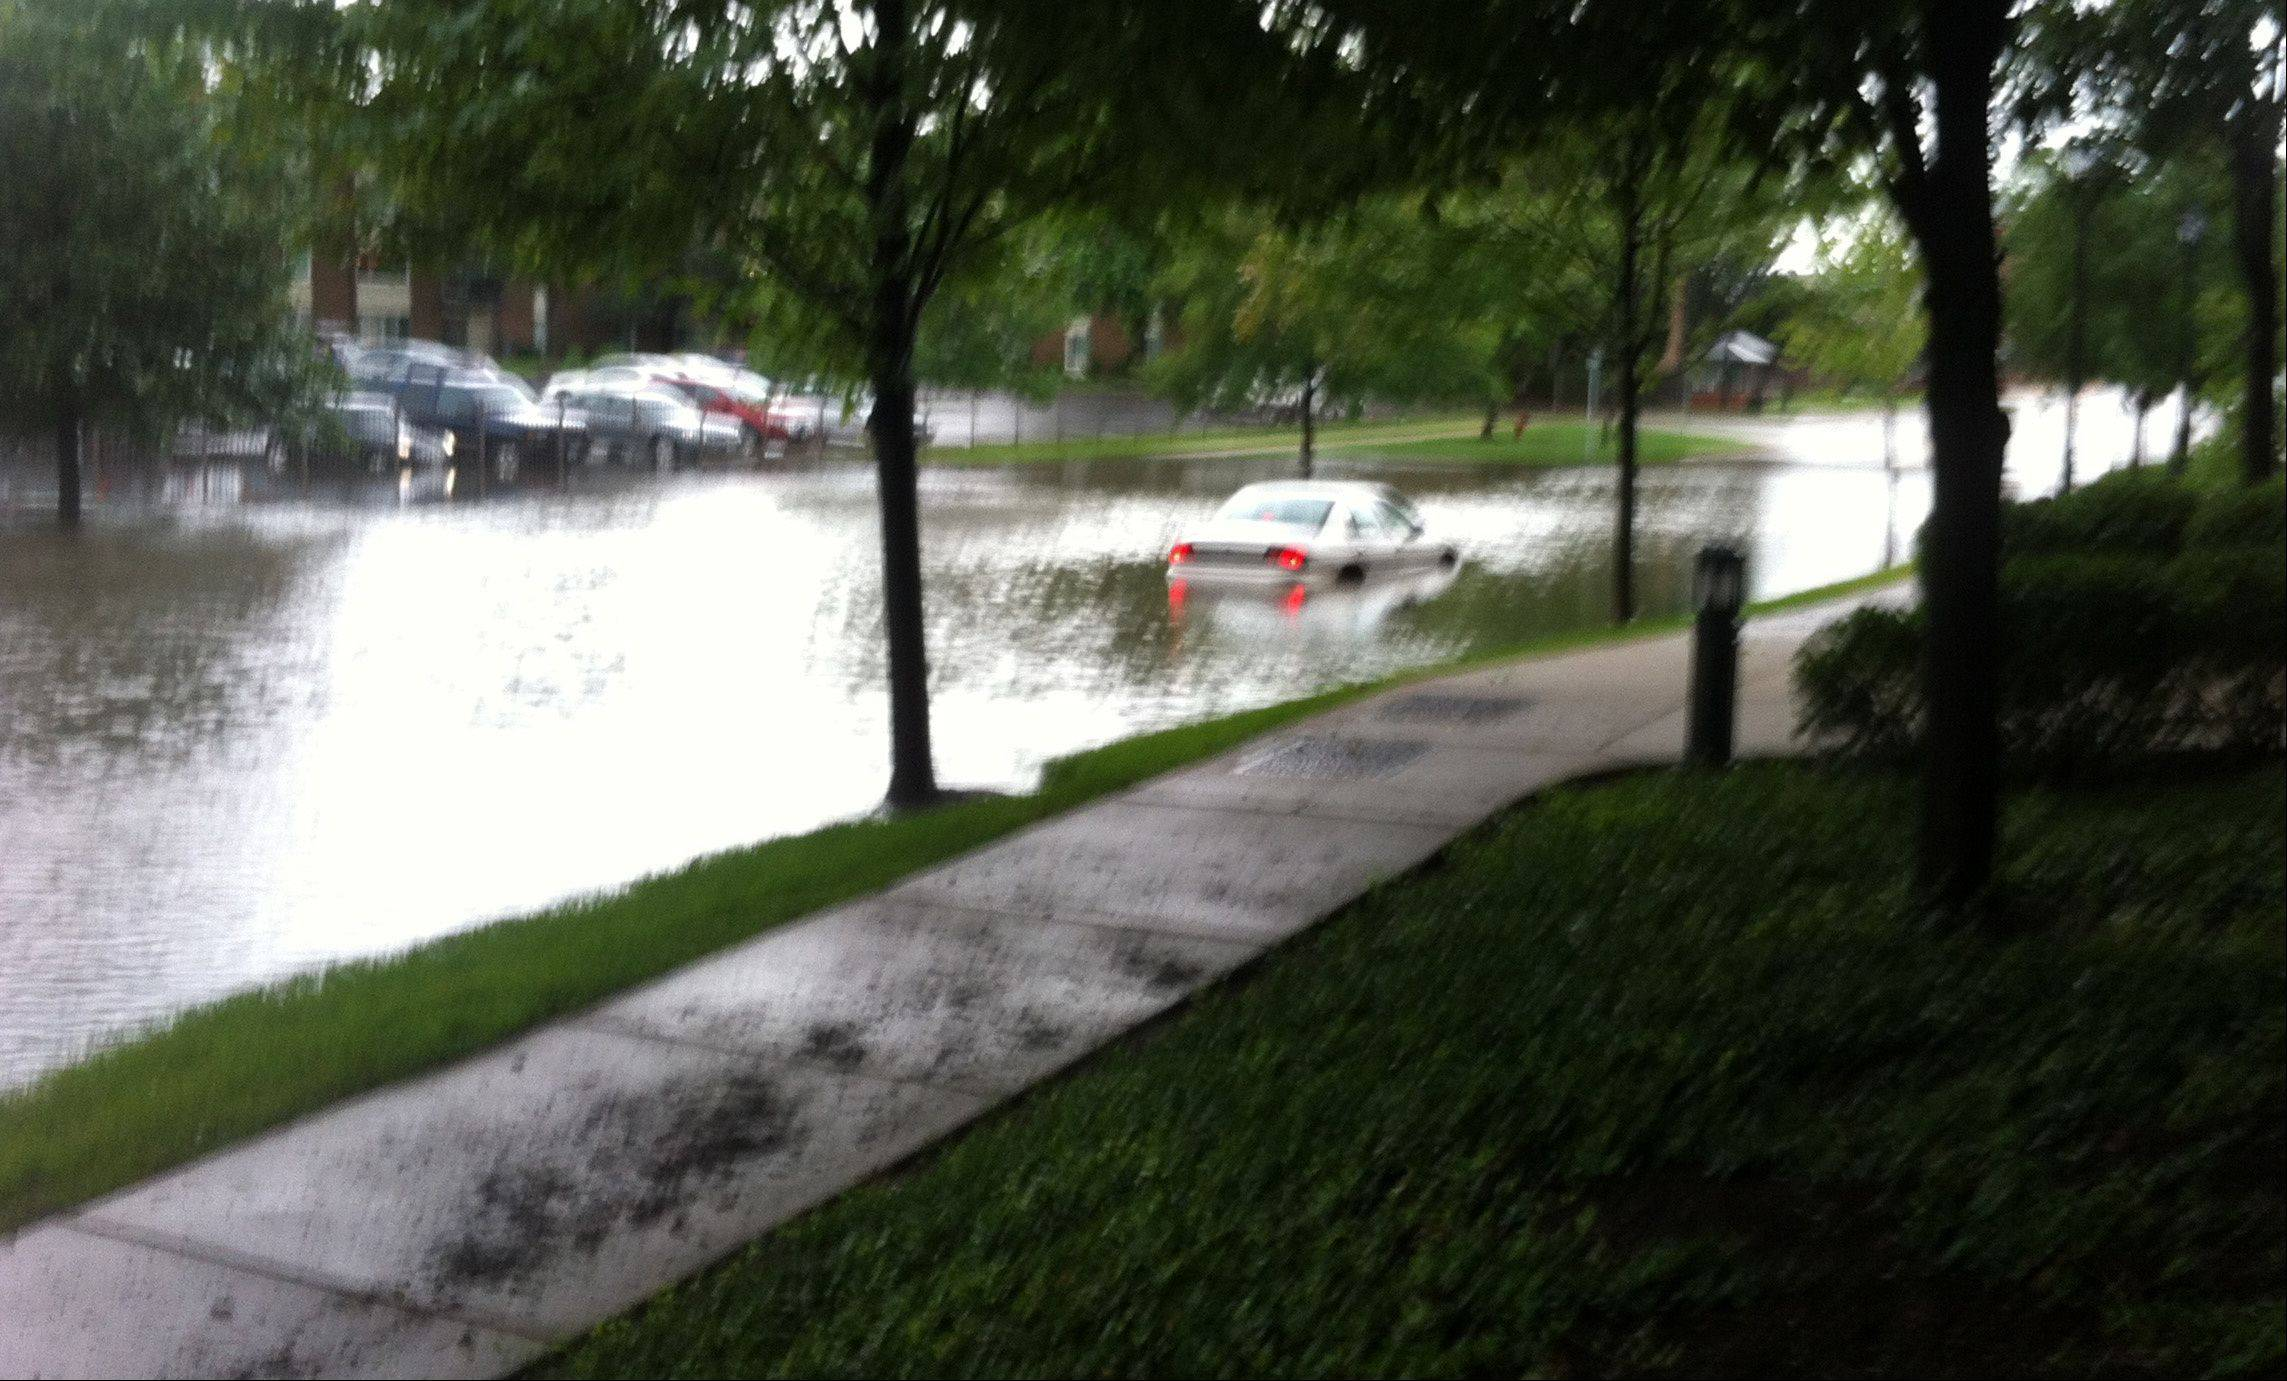 A motorist deals with flooding in downtown Palatine Wednesday morning.